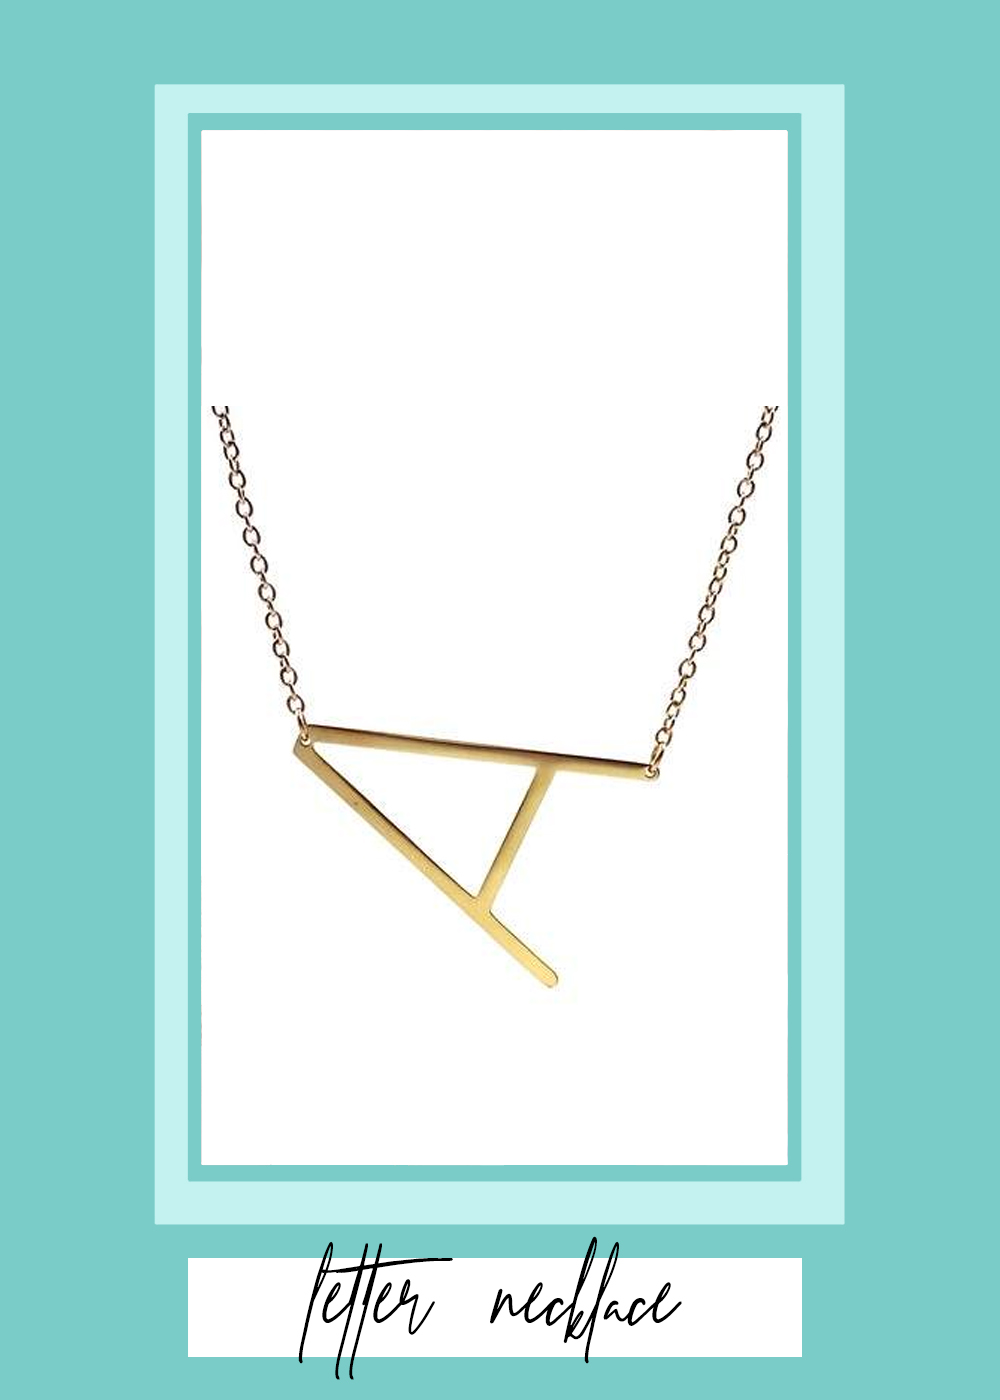 005. - Initial Necklace // $18